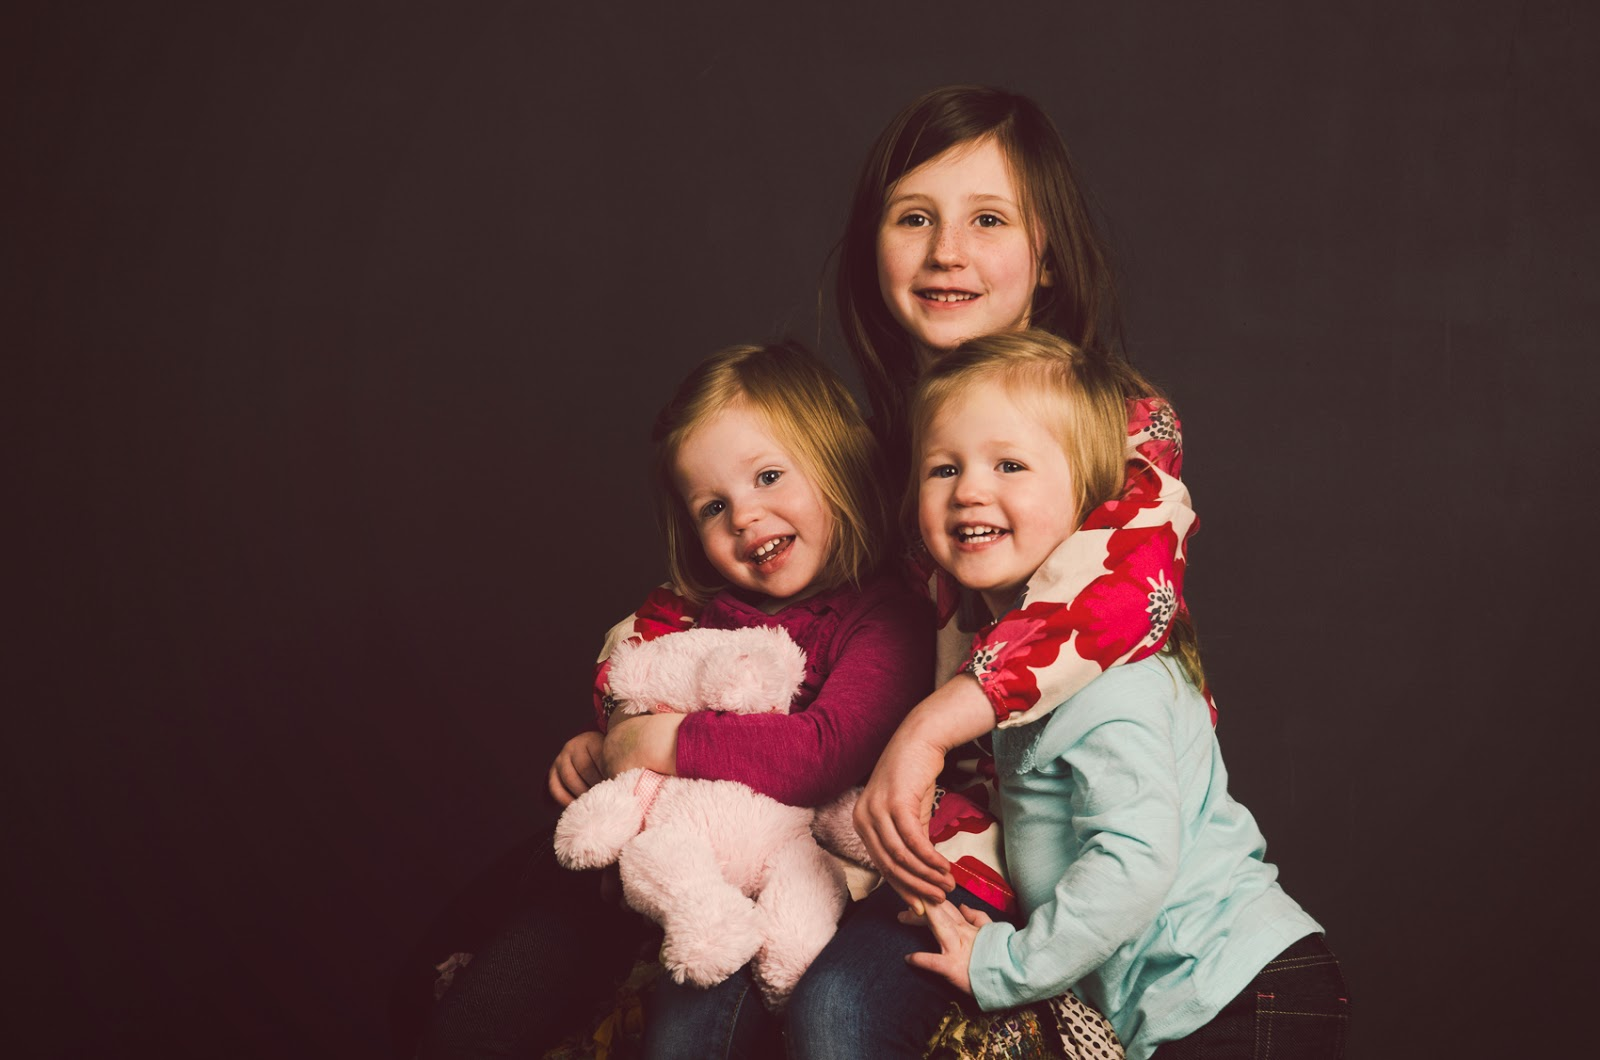 indianapolis photography studio provides fun, high end family portraits